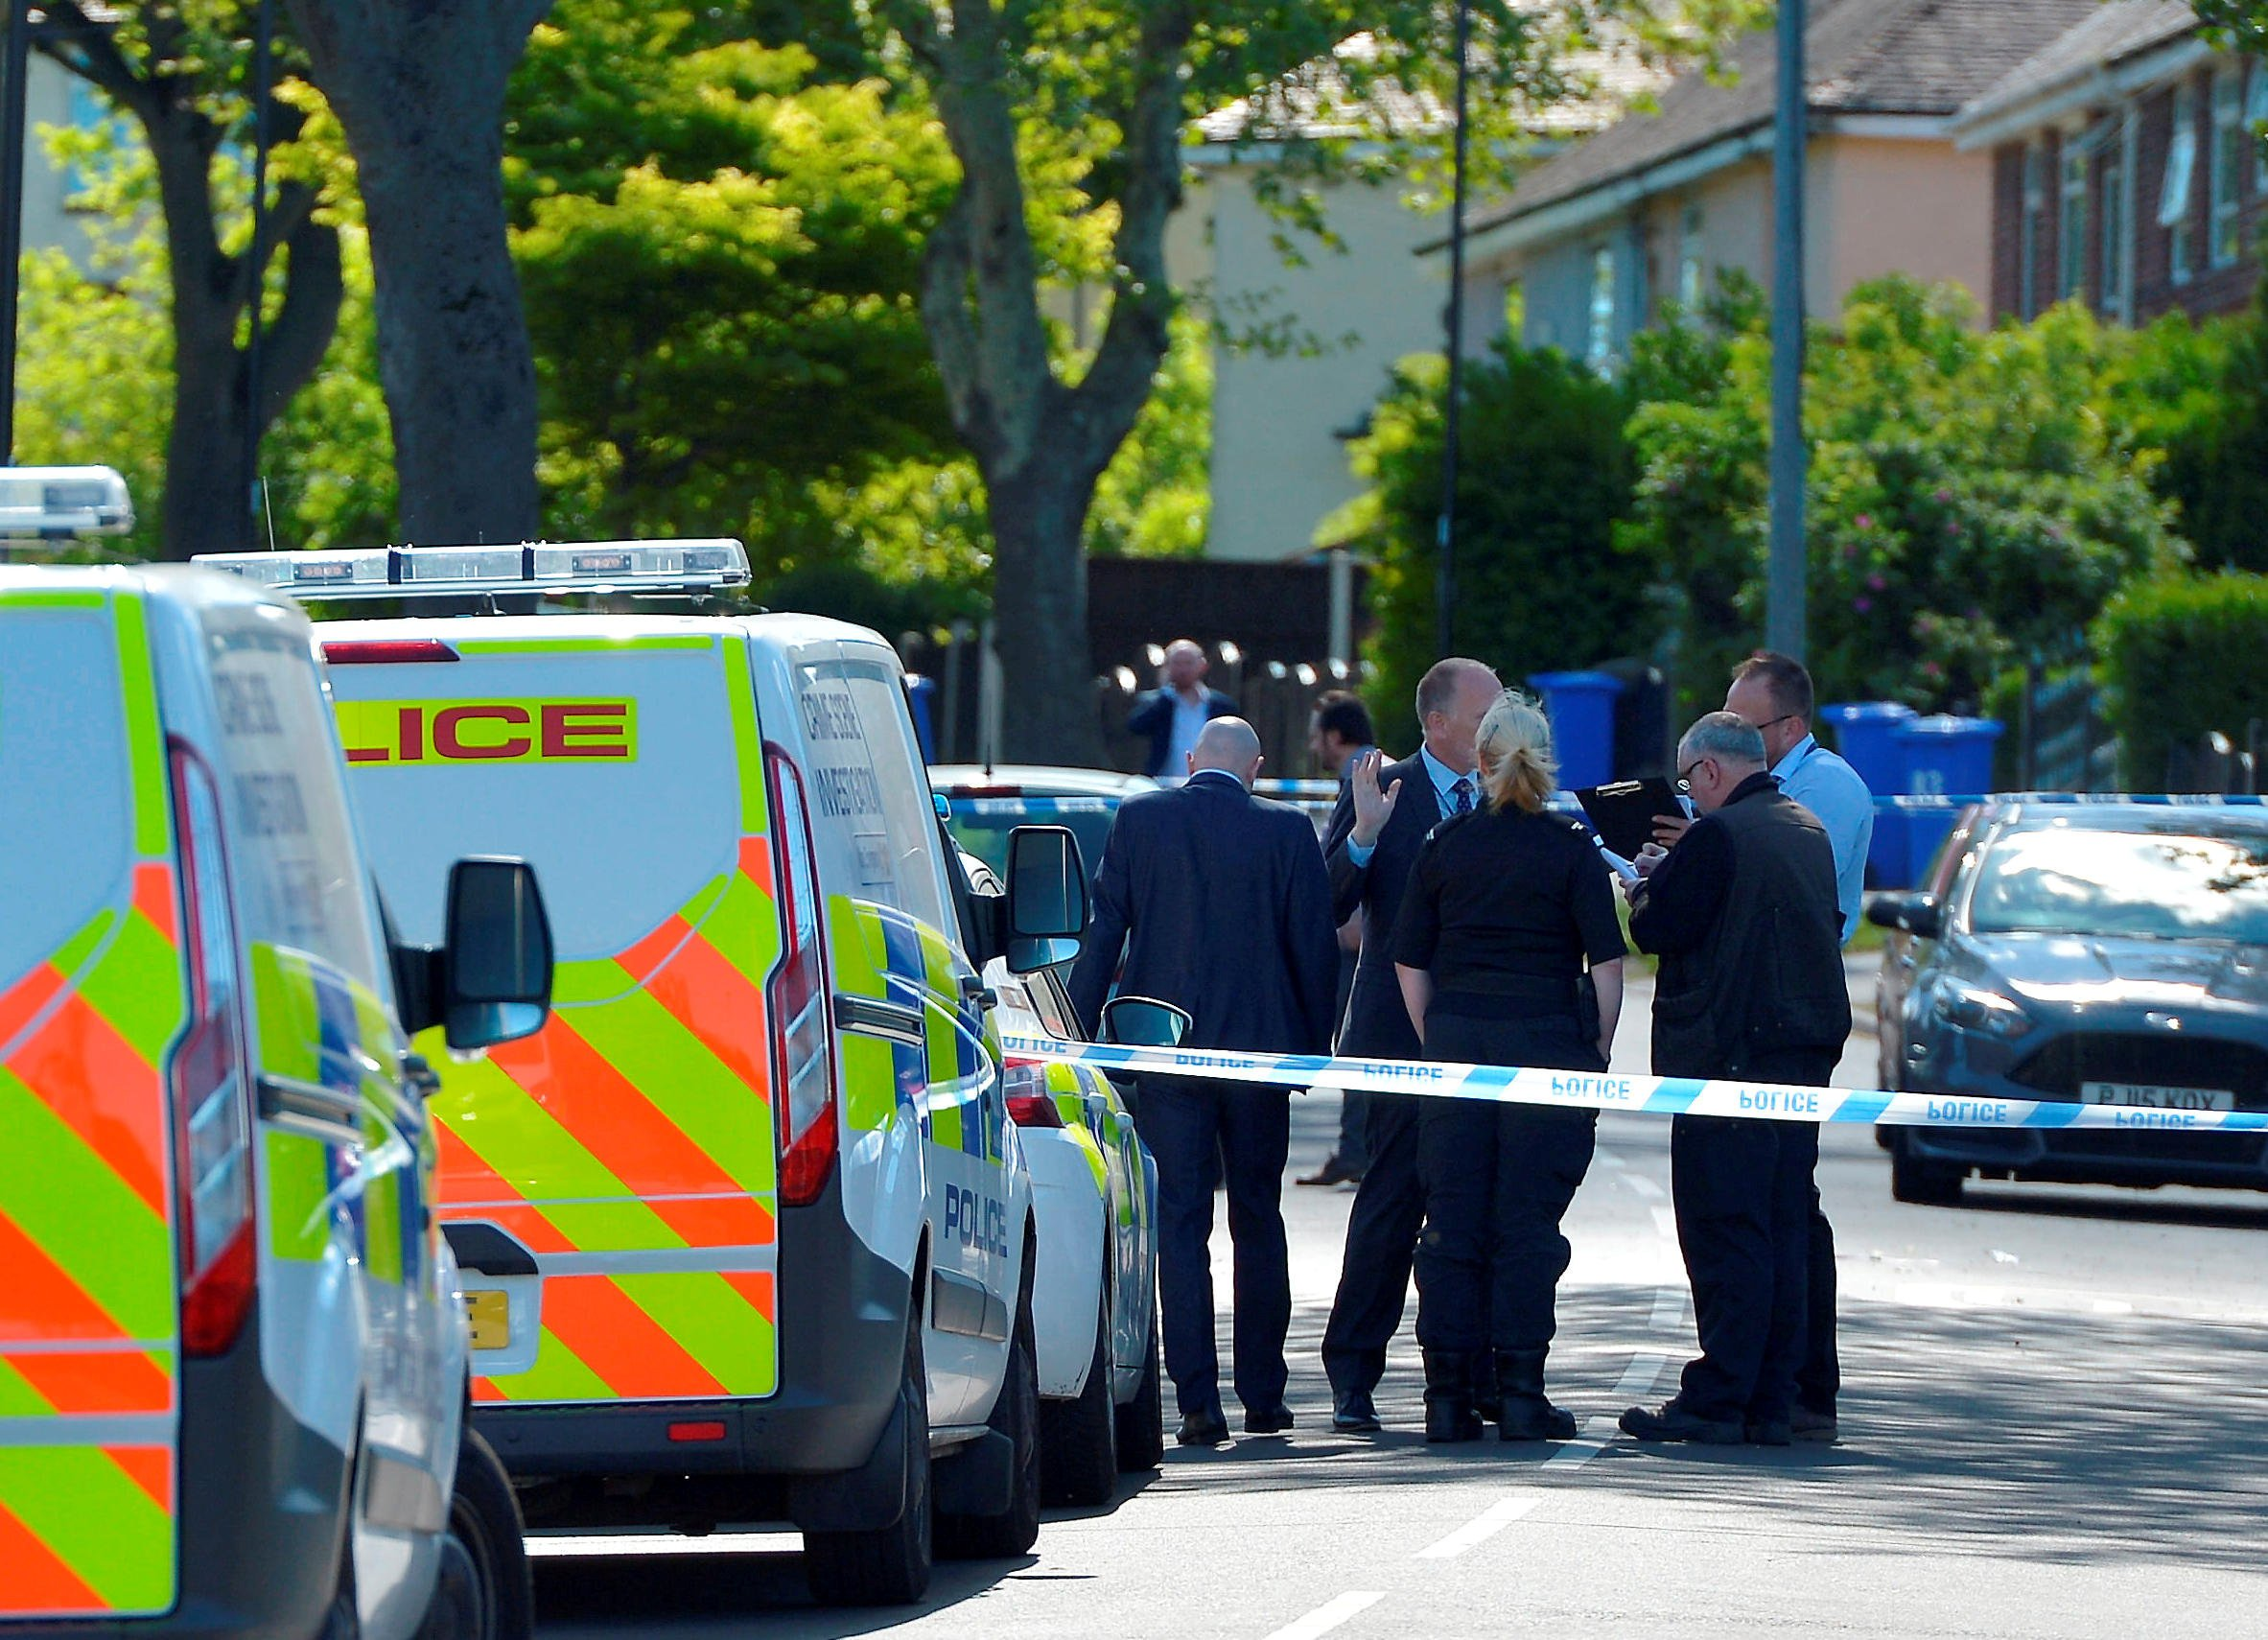 Six children in hospital after 'serious incident' at home in Sheffield